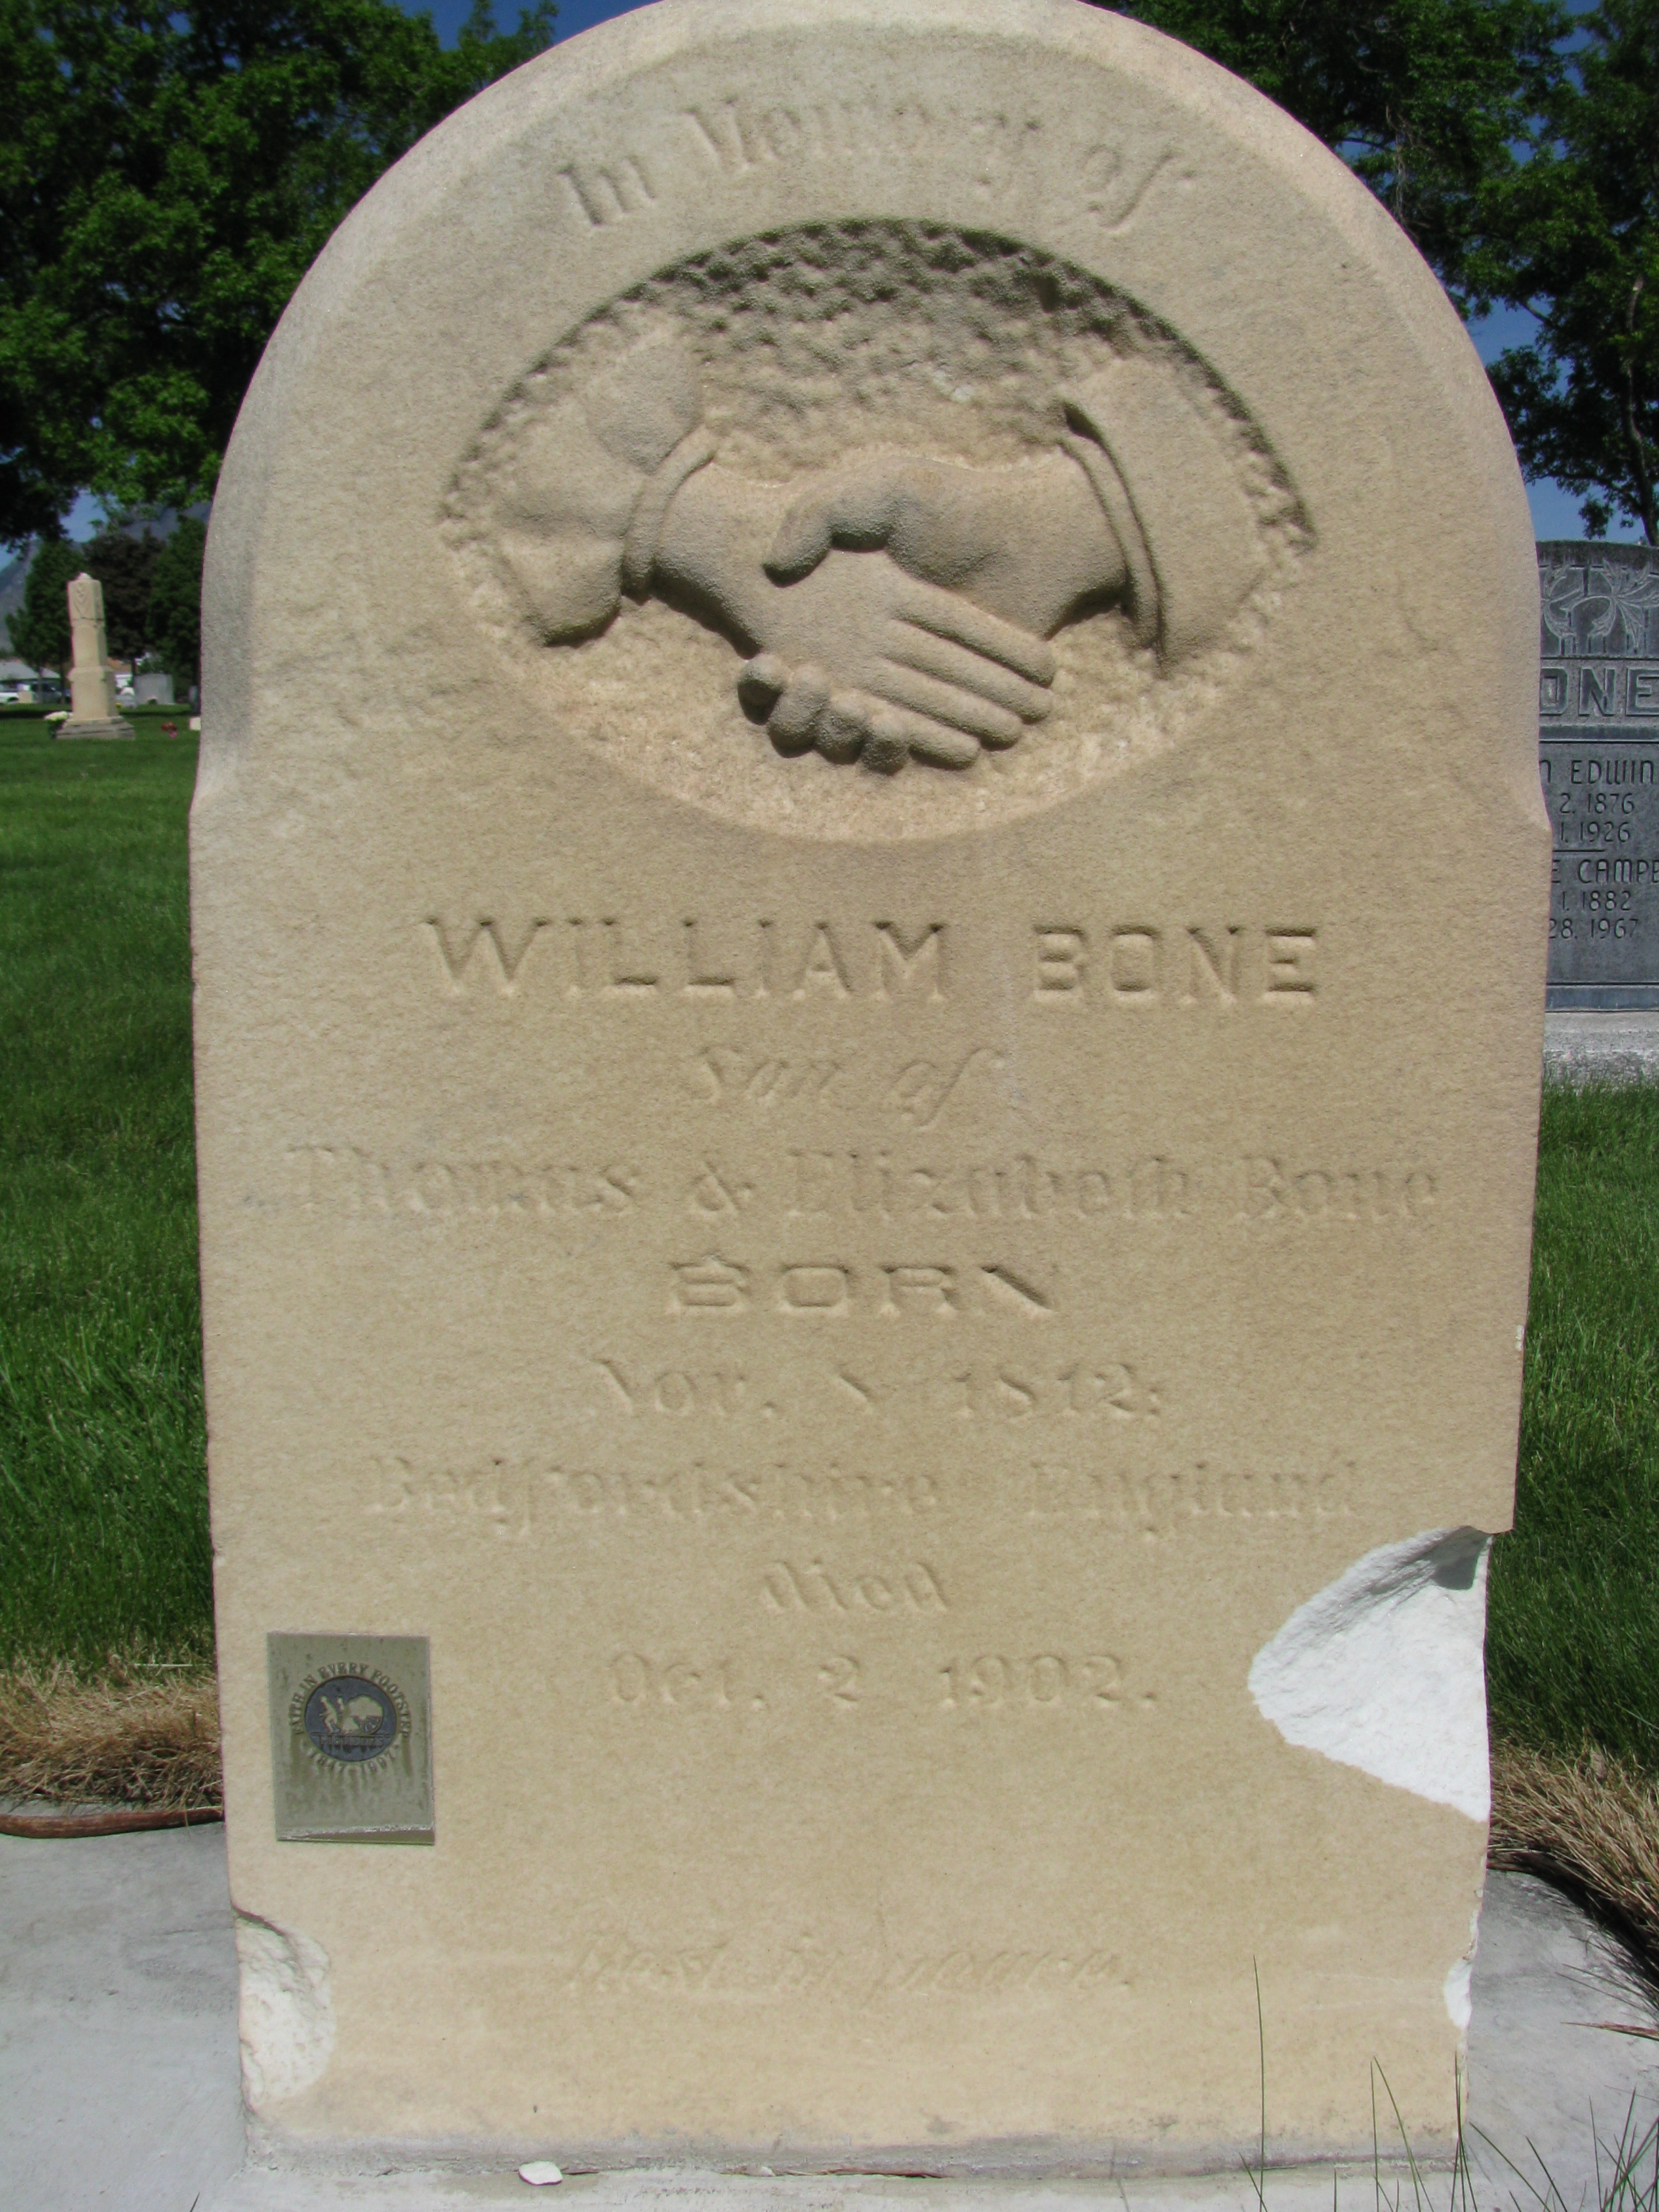 William B Bone